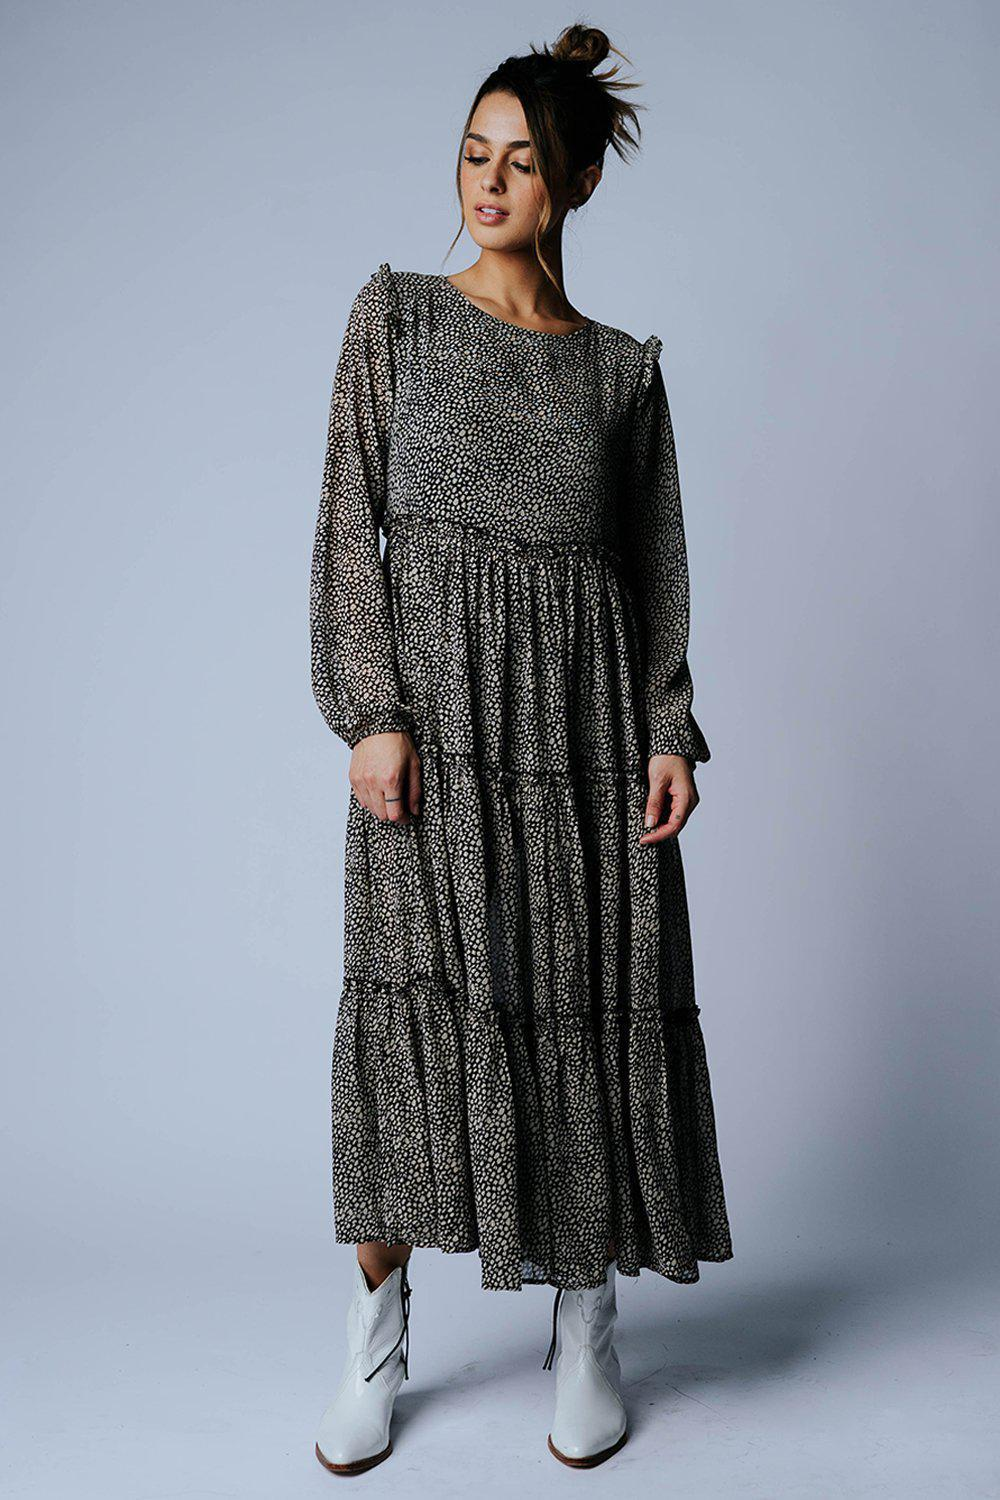 best_seller, Never Break Floral Maxi Dress in Black, Dress, women's clothing, dresses, skirts, coats, jackets, shoes, boots, tops, tee shirts, jeans, free people, levi's, rollas, jumpsuits, bottoms, tops, sweaters, pullovers, pants, shorts, sweats,.